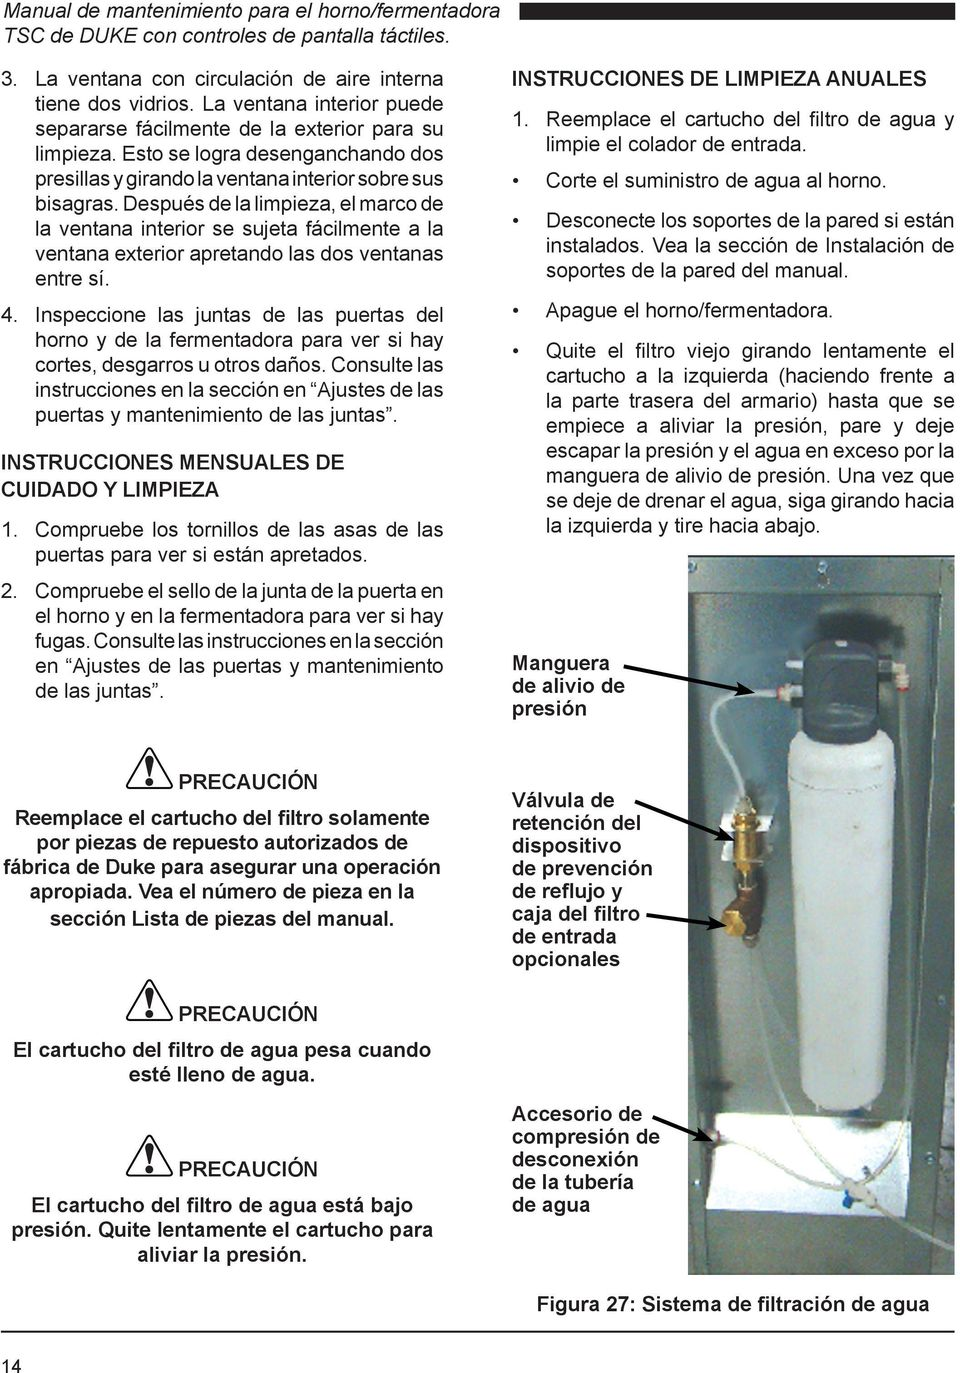 MANUAL DE MANTENIMIENTO - PDF